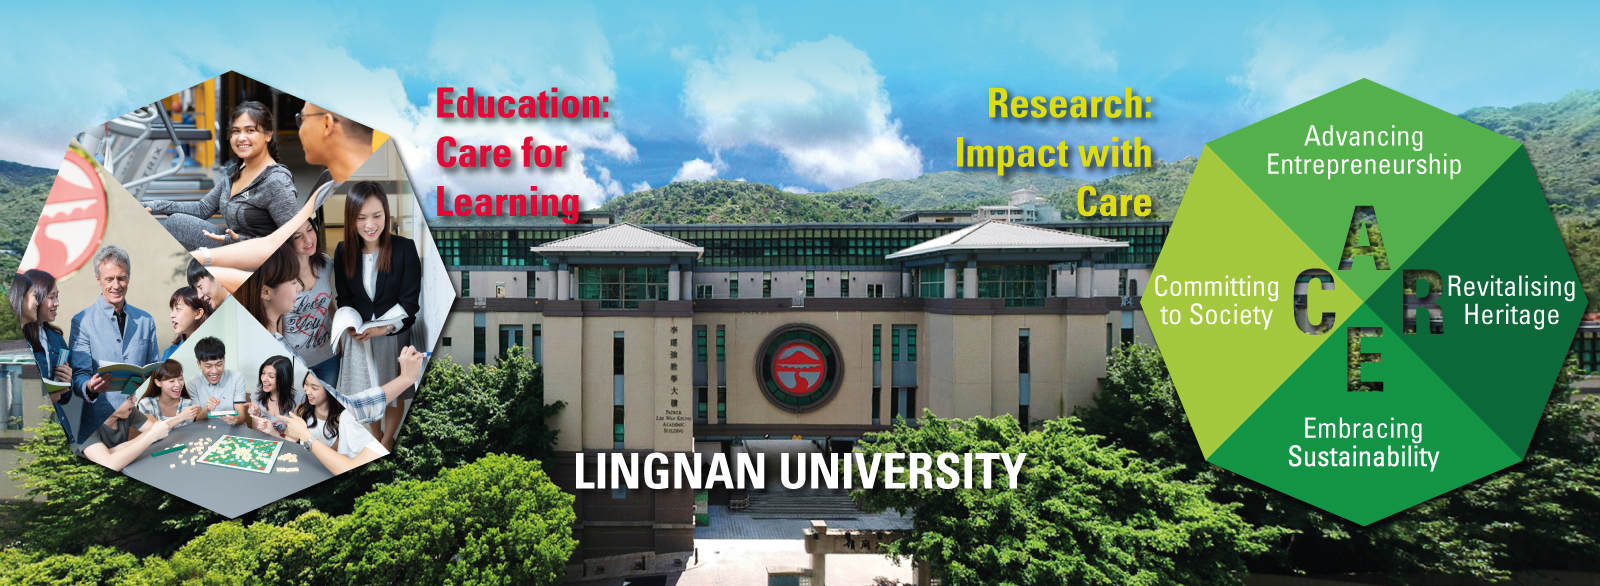 Lingnan University: Education: Care for Learning • Research: Impact with Care